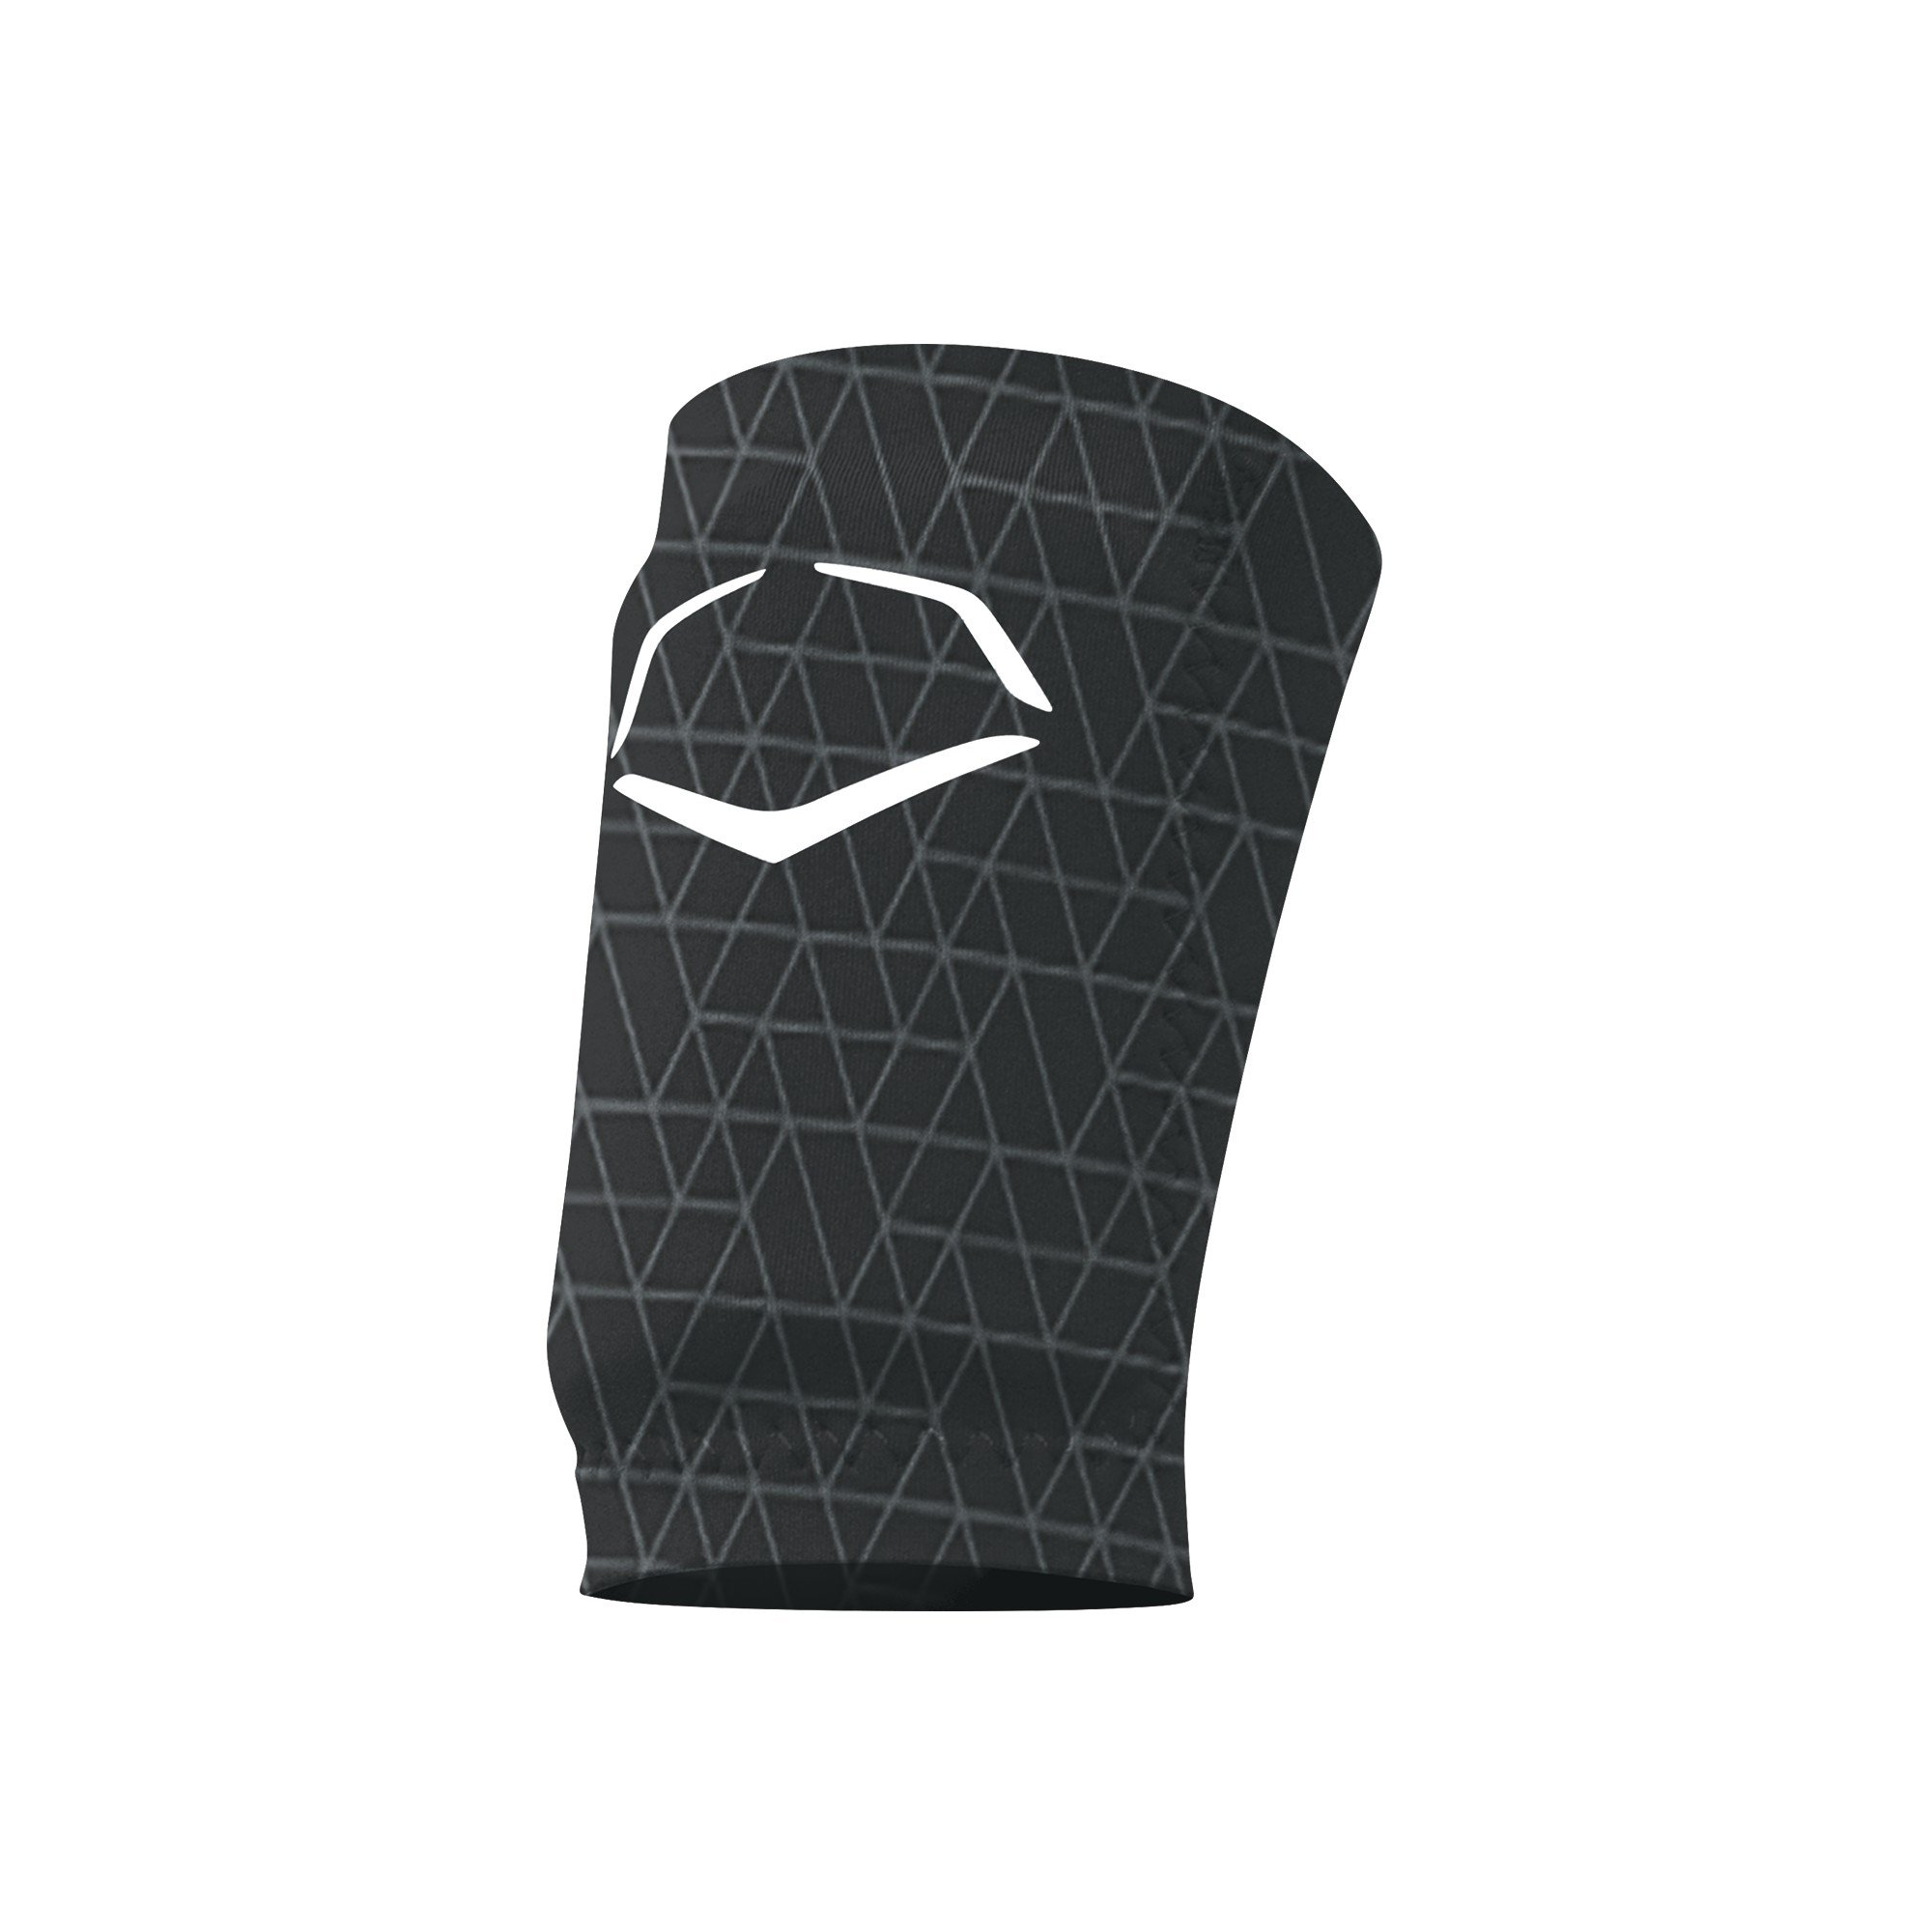 EvoShield EvoCharge Protective Wrist Guard - Medium, Black